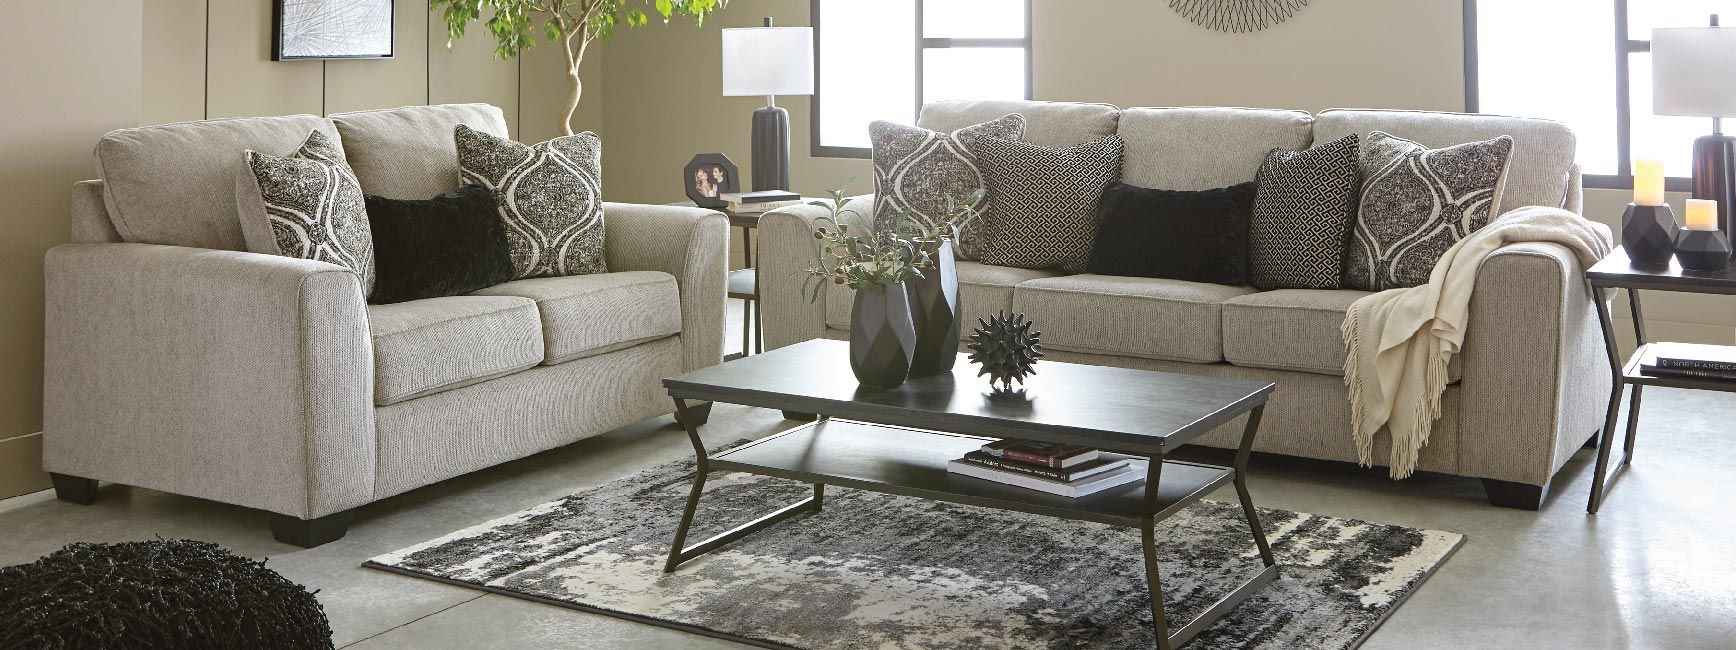 Sofa Dreams Outlet Visit Our Home Furniture Store In Sacramento Ca